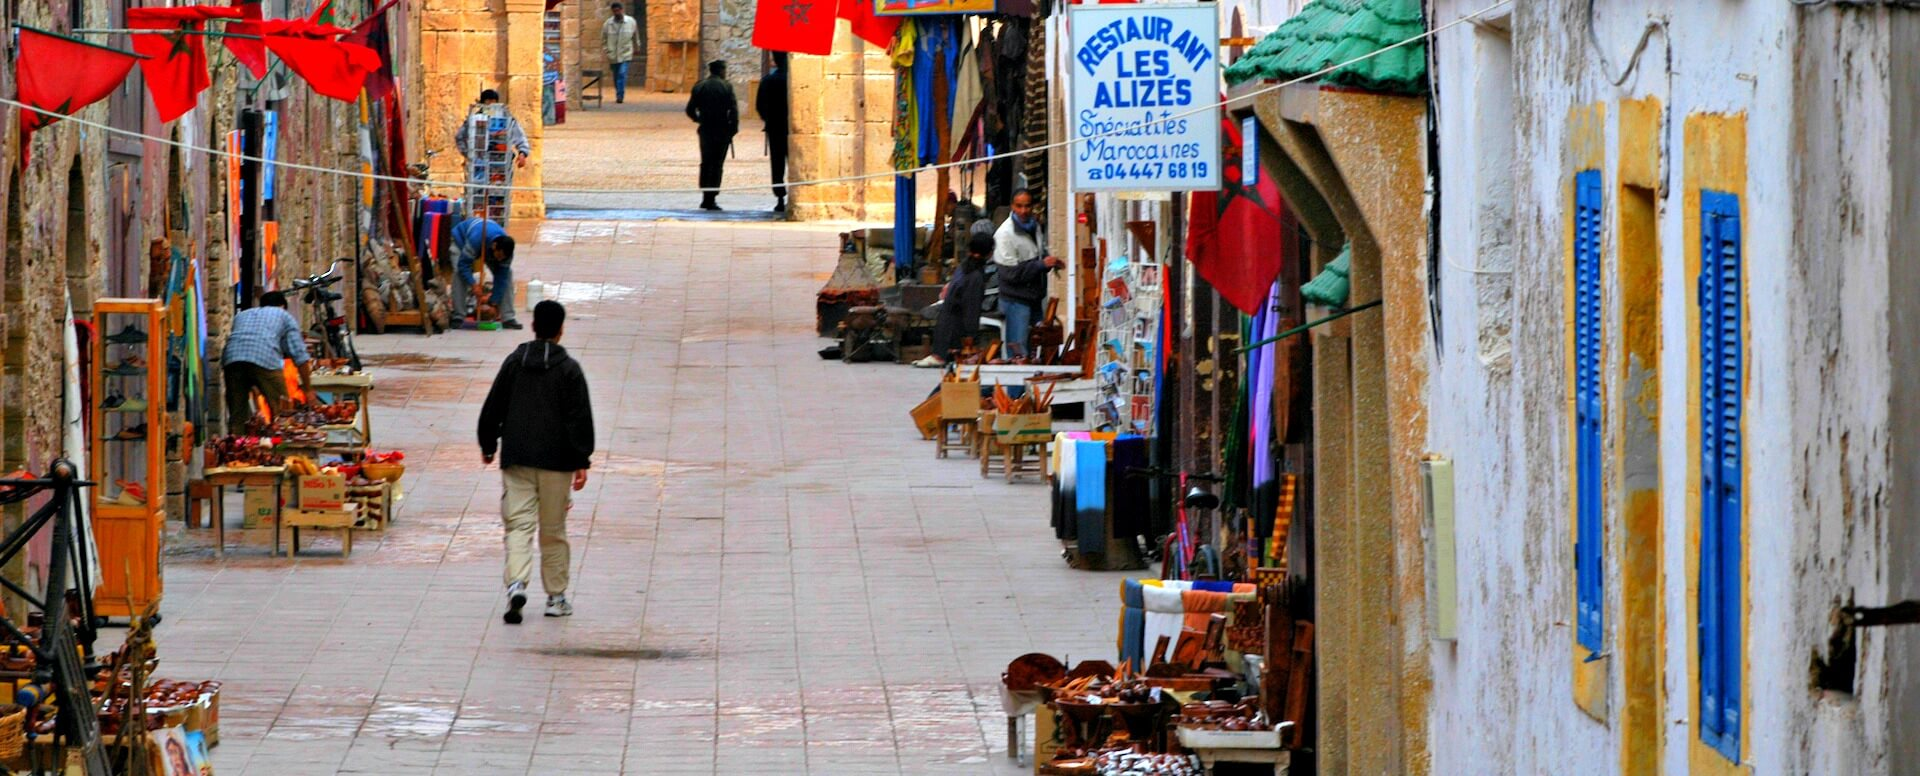 6. Get lost in the Traditional Souks - Essaouira